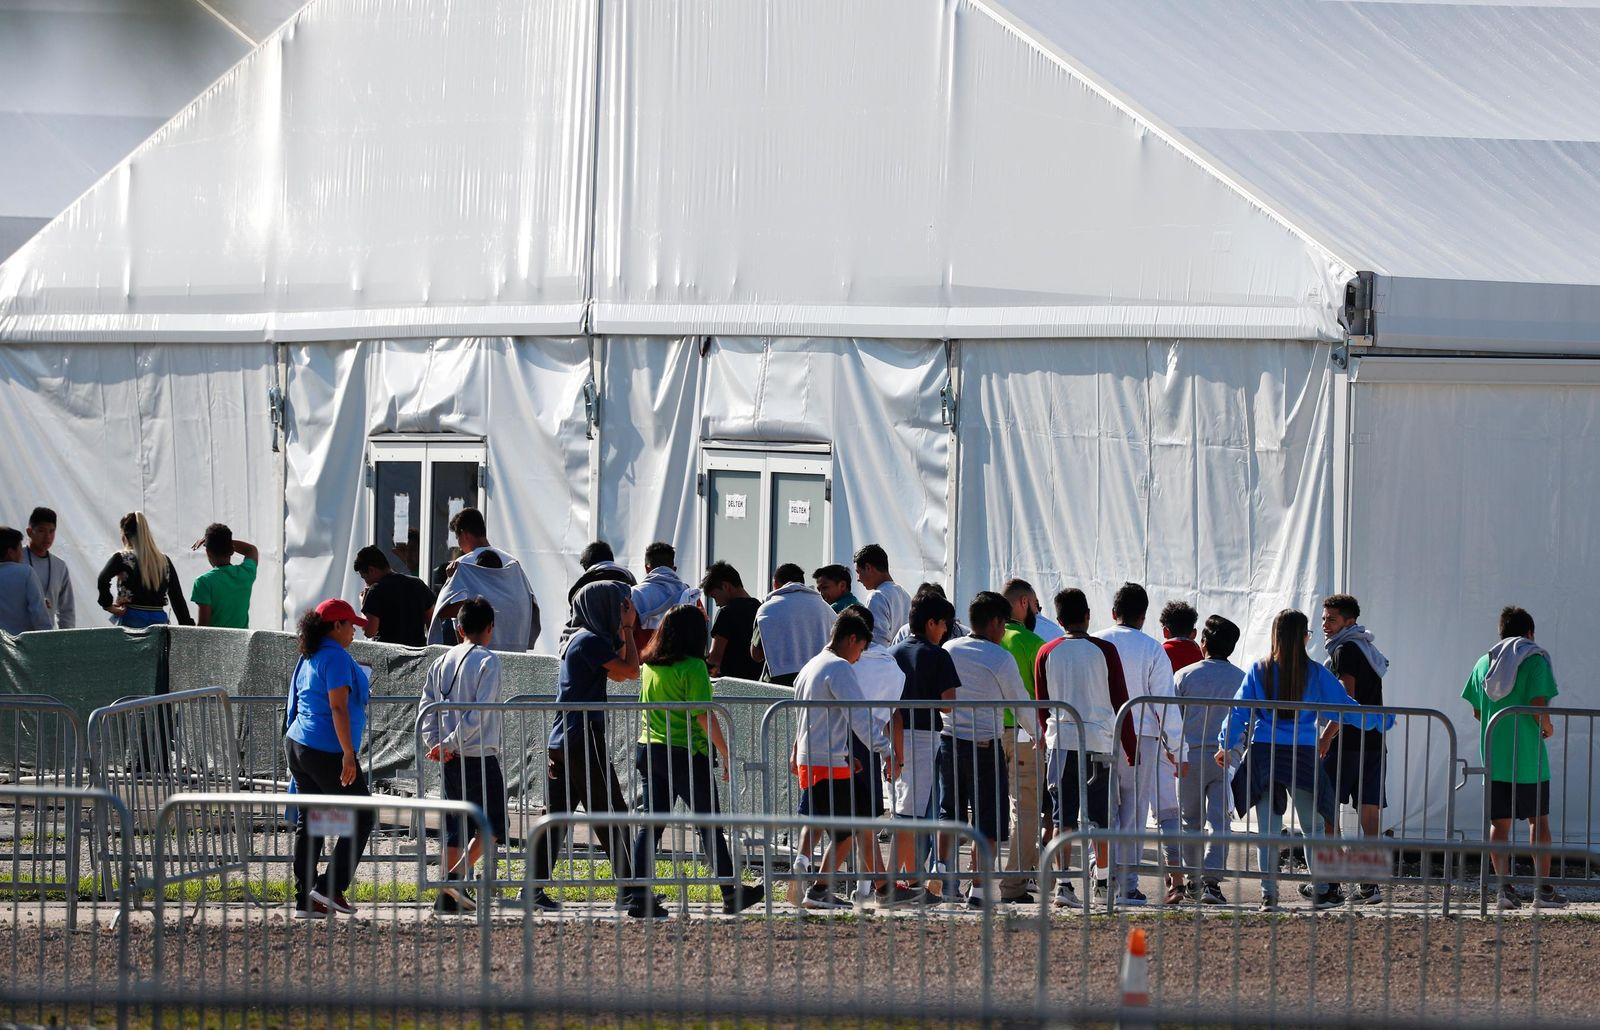 FILE- In this Feb. 19, 2019 file photo, children line up to enter a tent at the Homestead Temporary Shelter for Unaccompanied Children in Homestead, Fla. The American Civil Liberties Union is seeking potentially millions of dollars in damages on behalf of thousands of immigrant families who were separated at the U.S.-Mexico border. The ACLU and other attorneys filed a lawsuit Thursday, Oct. 3, 2019, against past and present Trump administration officials in federal court in Tucson alleging the government violated immigrants' rights and traumatized young children who were taken from their parents after crossing the border illegally. (AP Photo/Wilfredo Lee, File)